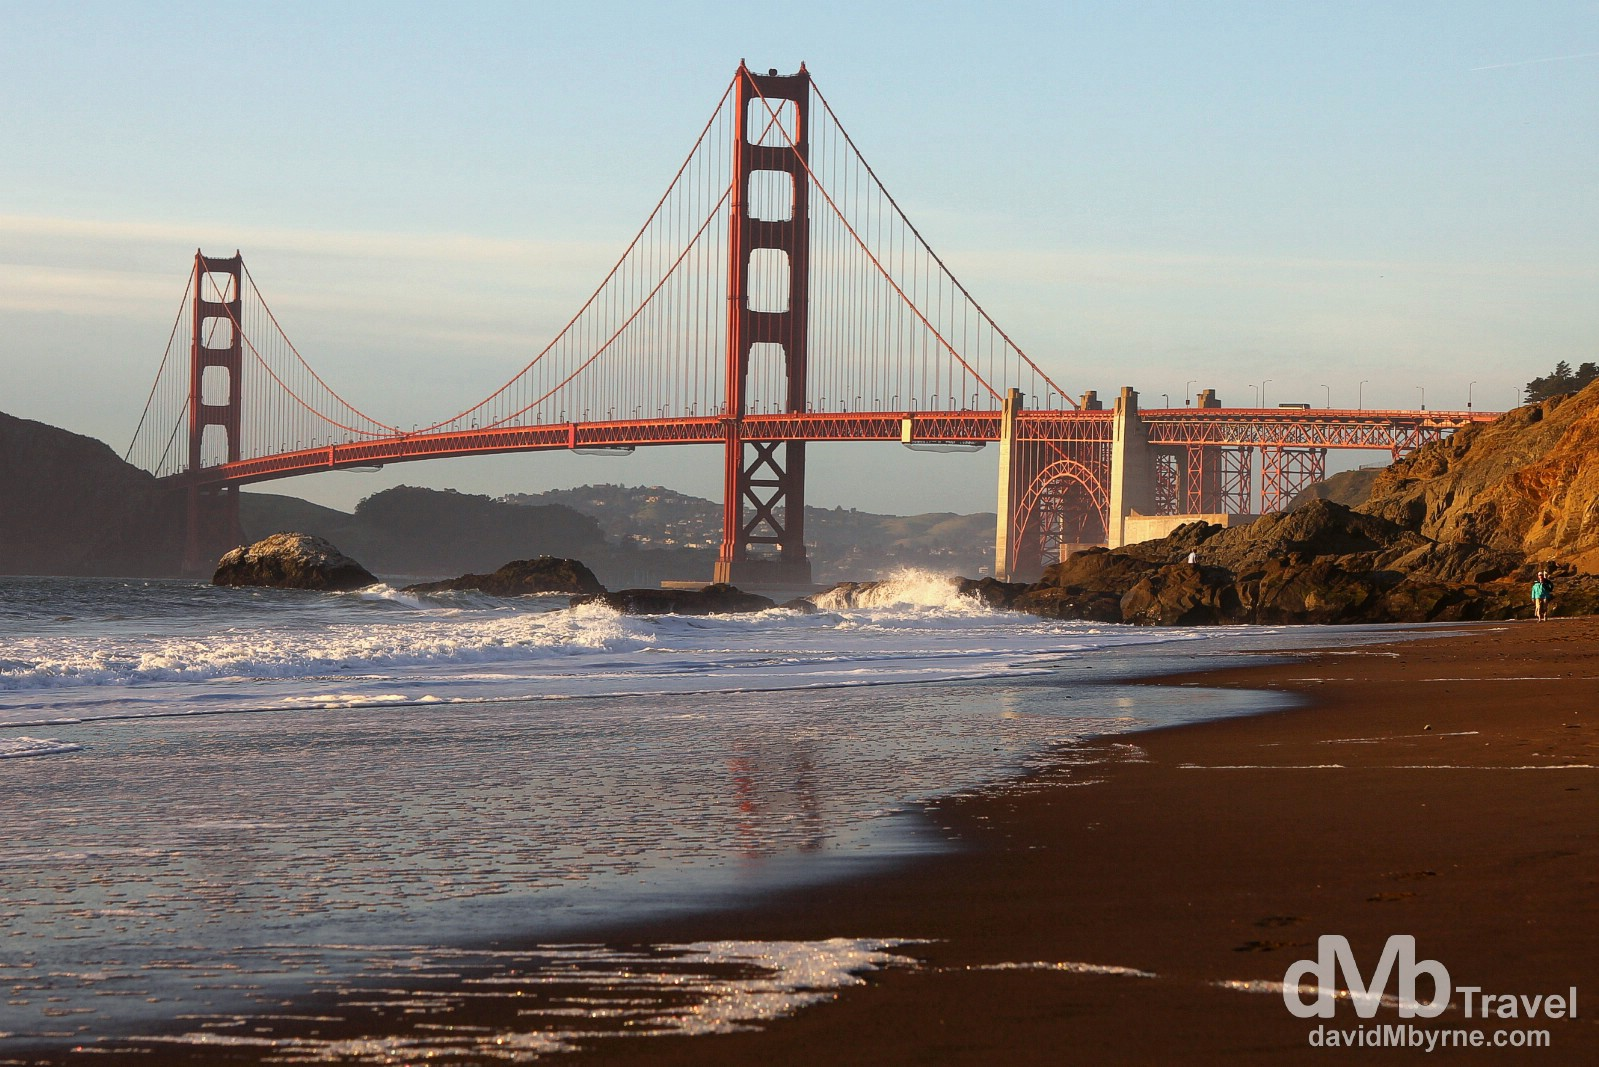 The Golden Gate Bridge as seen from Baker Beach nearing sunset, San Francisco, California, USA. April 10th 2013.